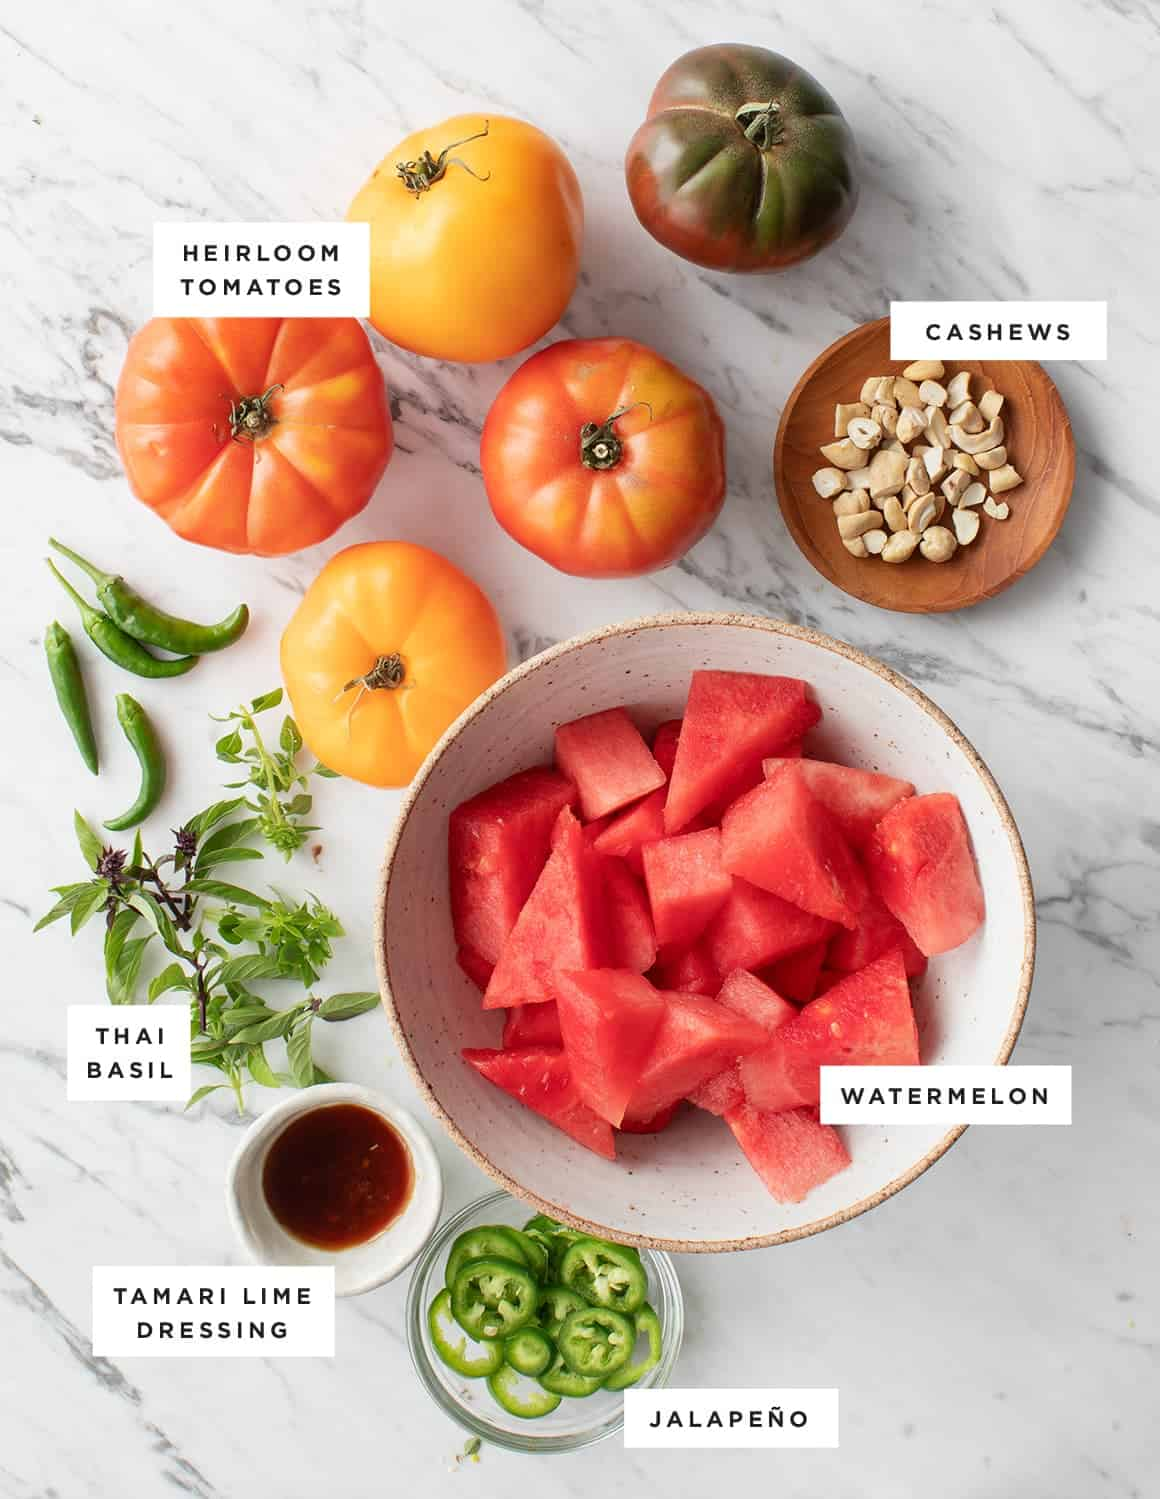 Spicy Tomato Watermelon Salad ingredients